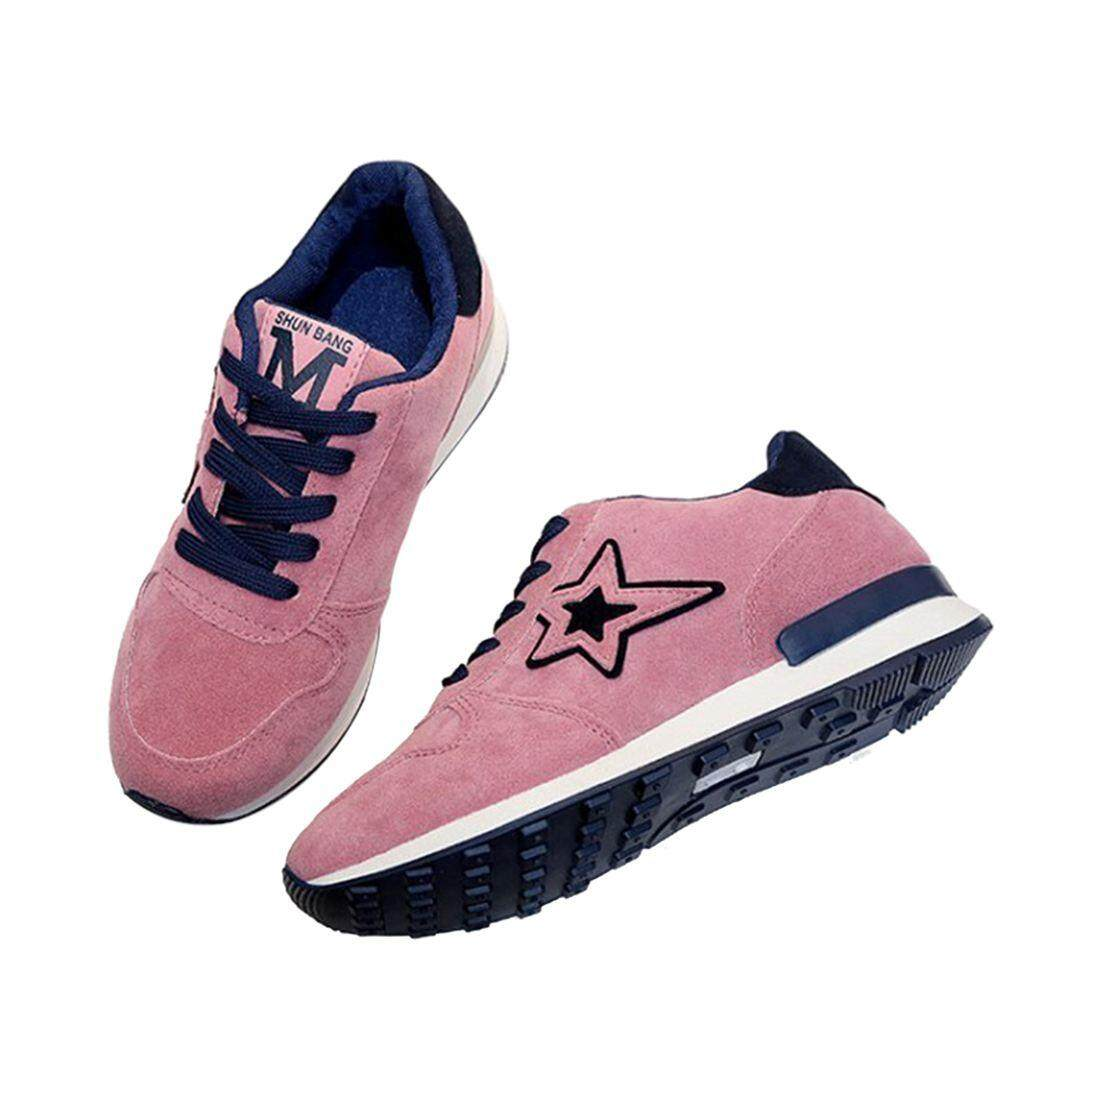 1 Pairs Of Pink Sports Shoes Five-Pointed Star Student Skid Shoes Breathable Leisure Travel Shoes Hiking Shoes Us8.5 = Eu39 Feet 245mm By Shakeshake.